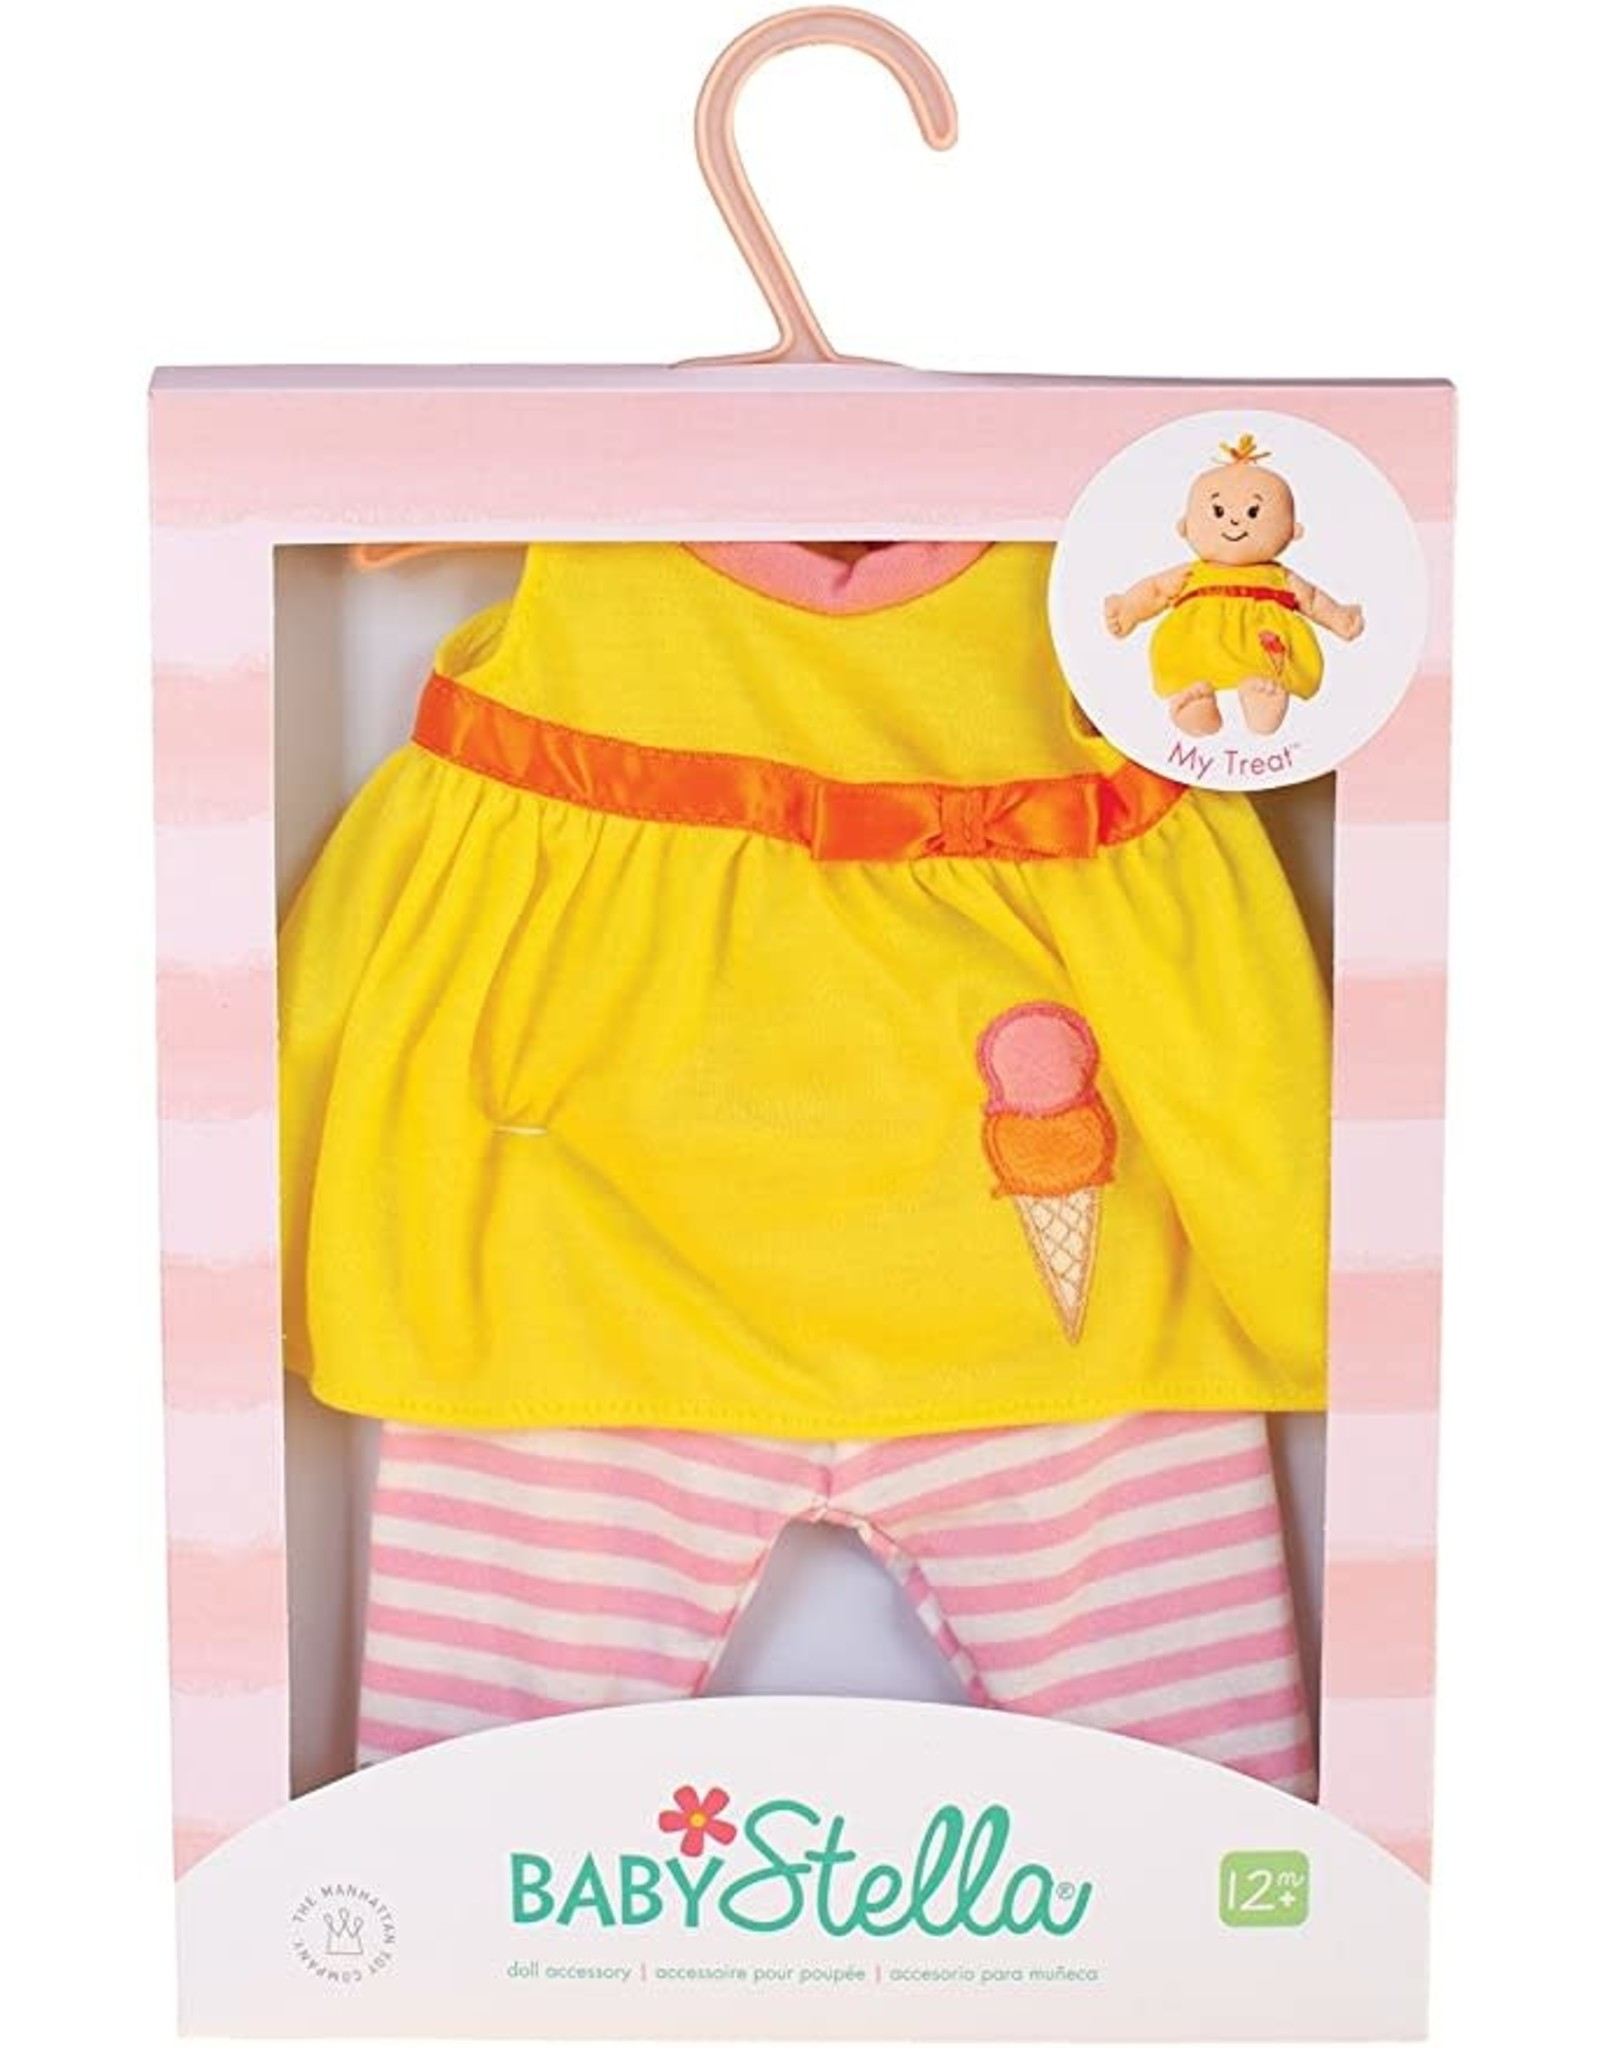 The Manhattan Toy Company Baby Stella My Treat Outfit